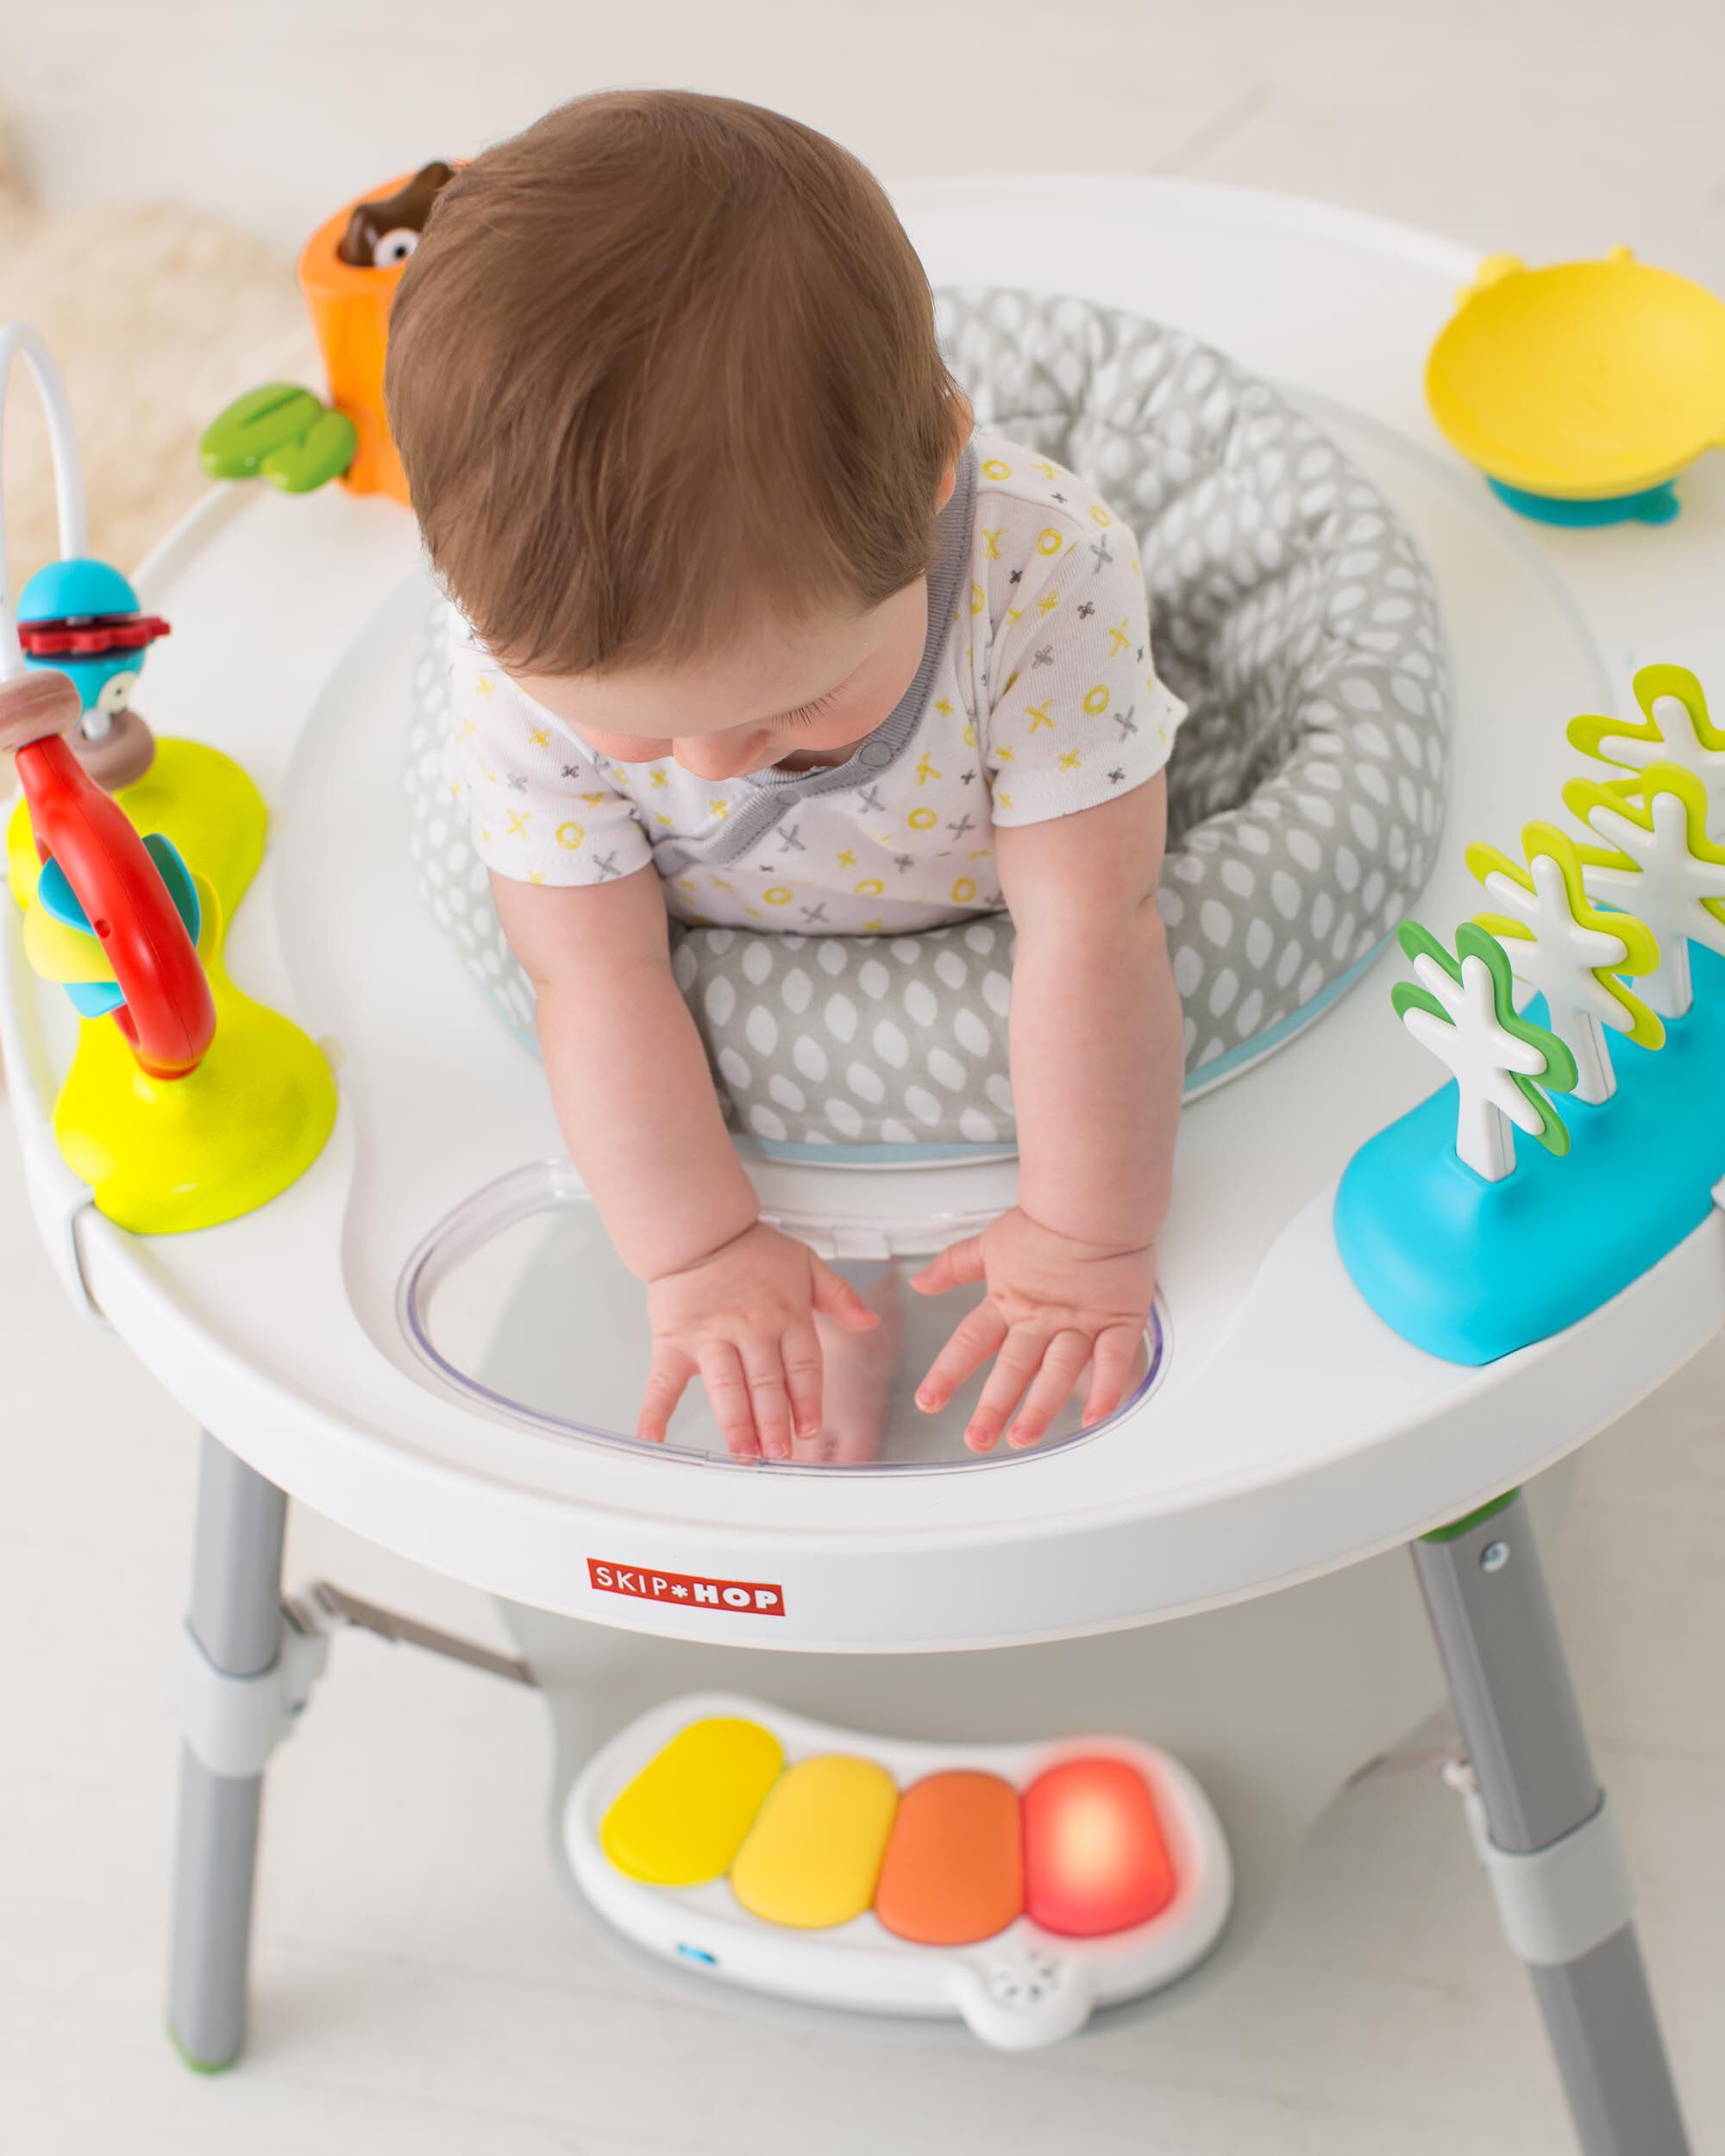 5 rules on how to choose toys for newborns